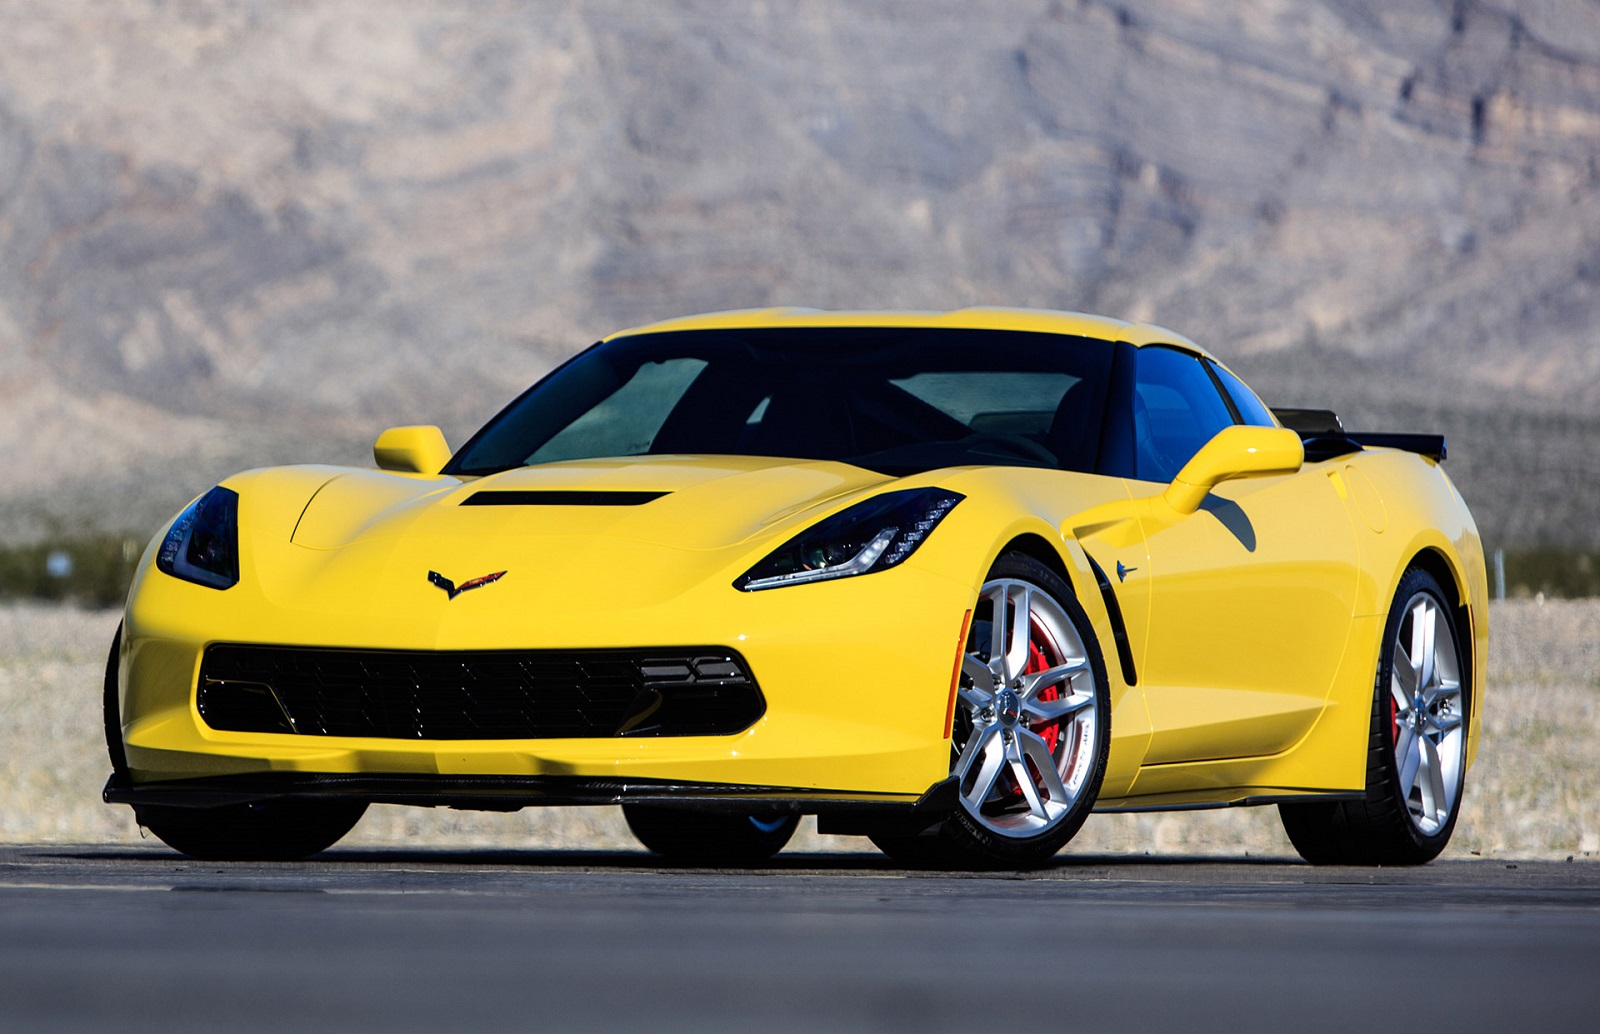 Tadge Addresses Concerns About Potential C7 Warranty Issues